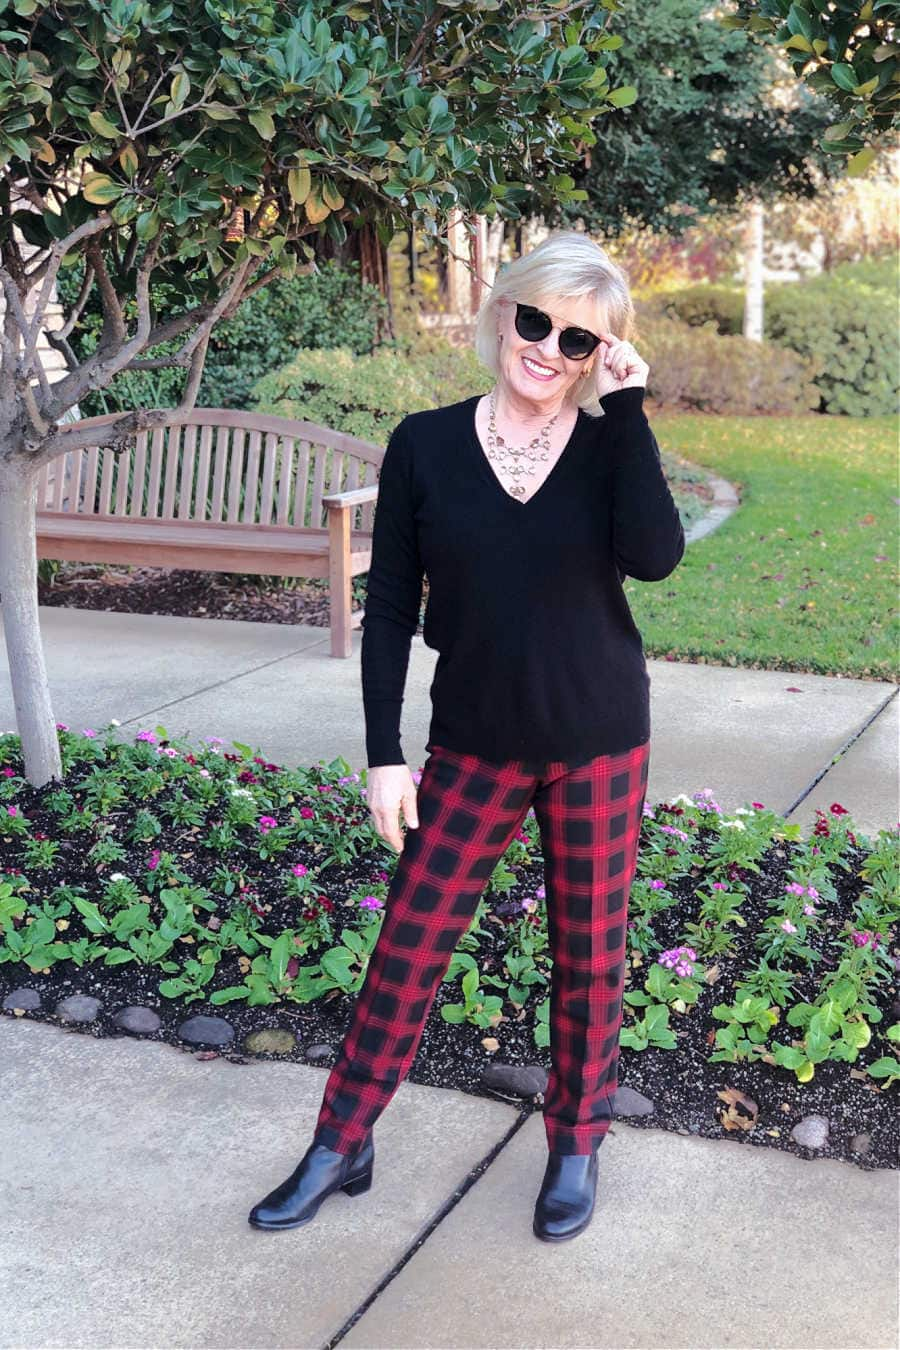 over 50 fashion blogger jennifer conolly of a well styled life wearing black and red checked pants and black sweater